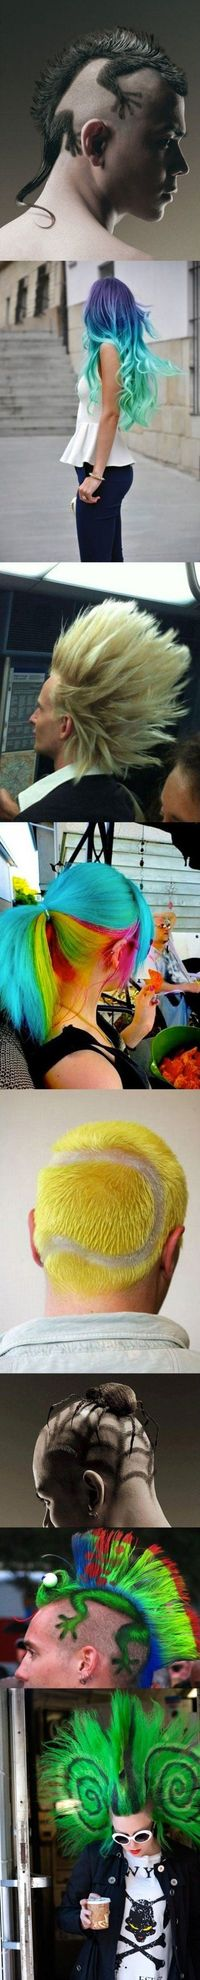 Awesome Haircuts: Not for me but very cool!